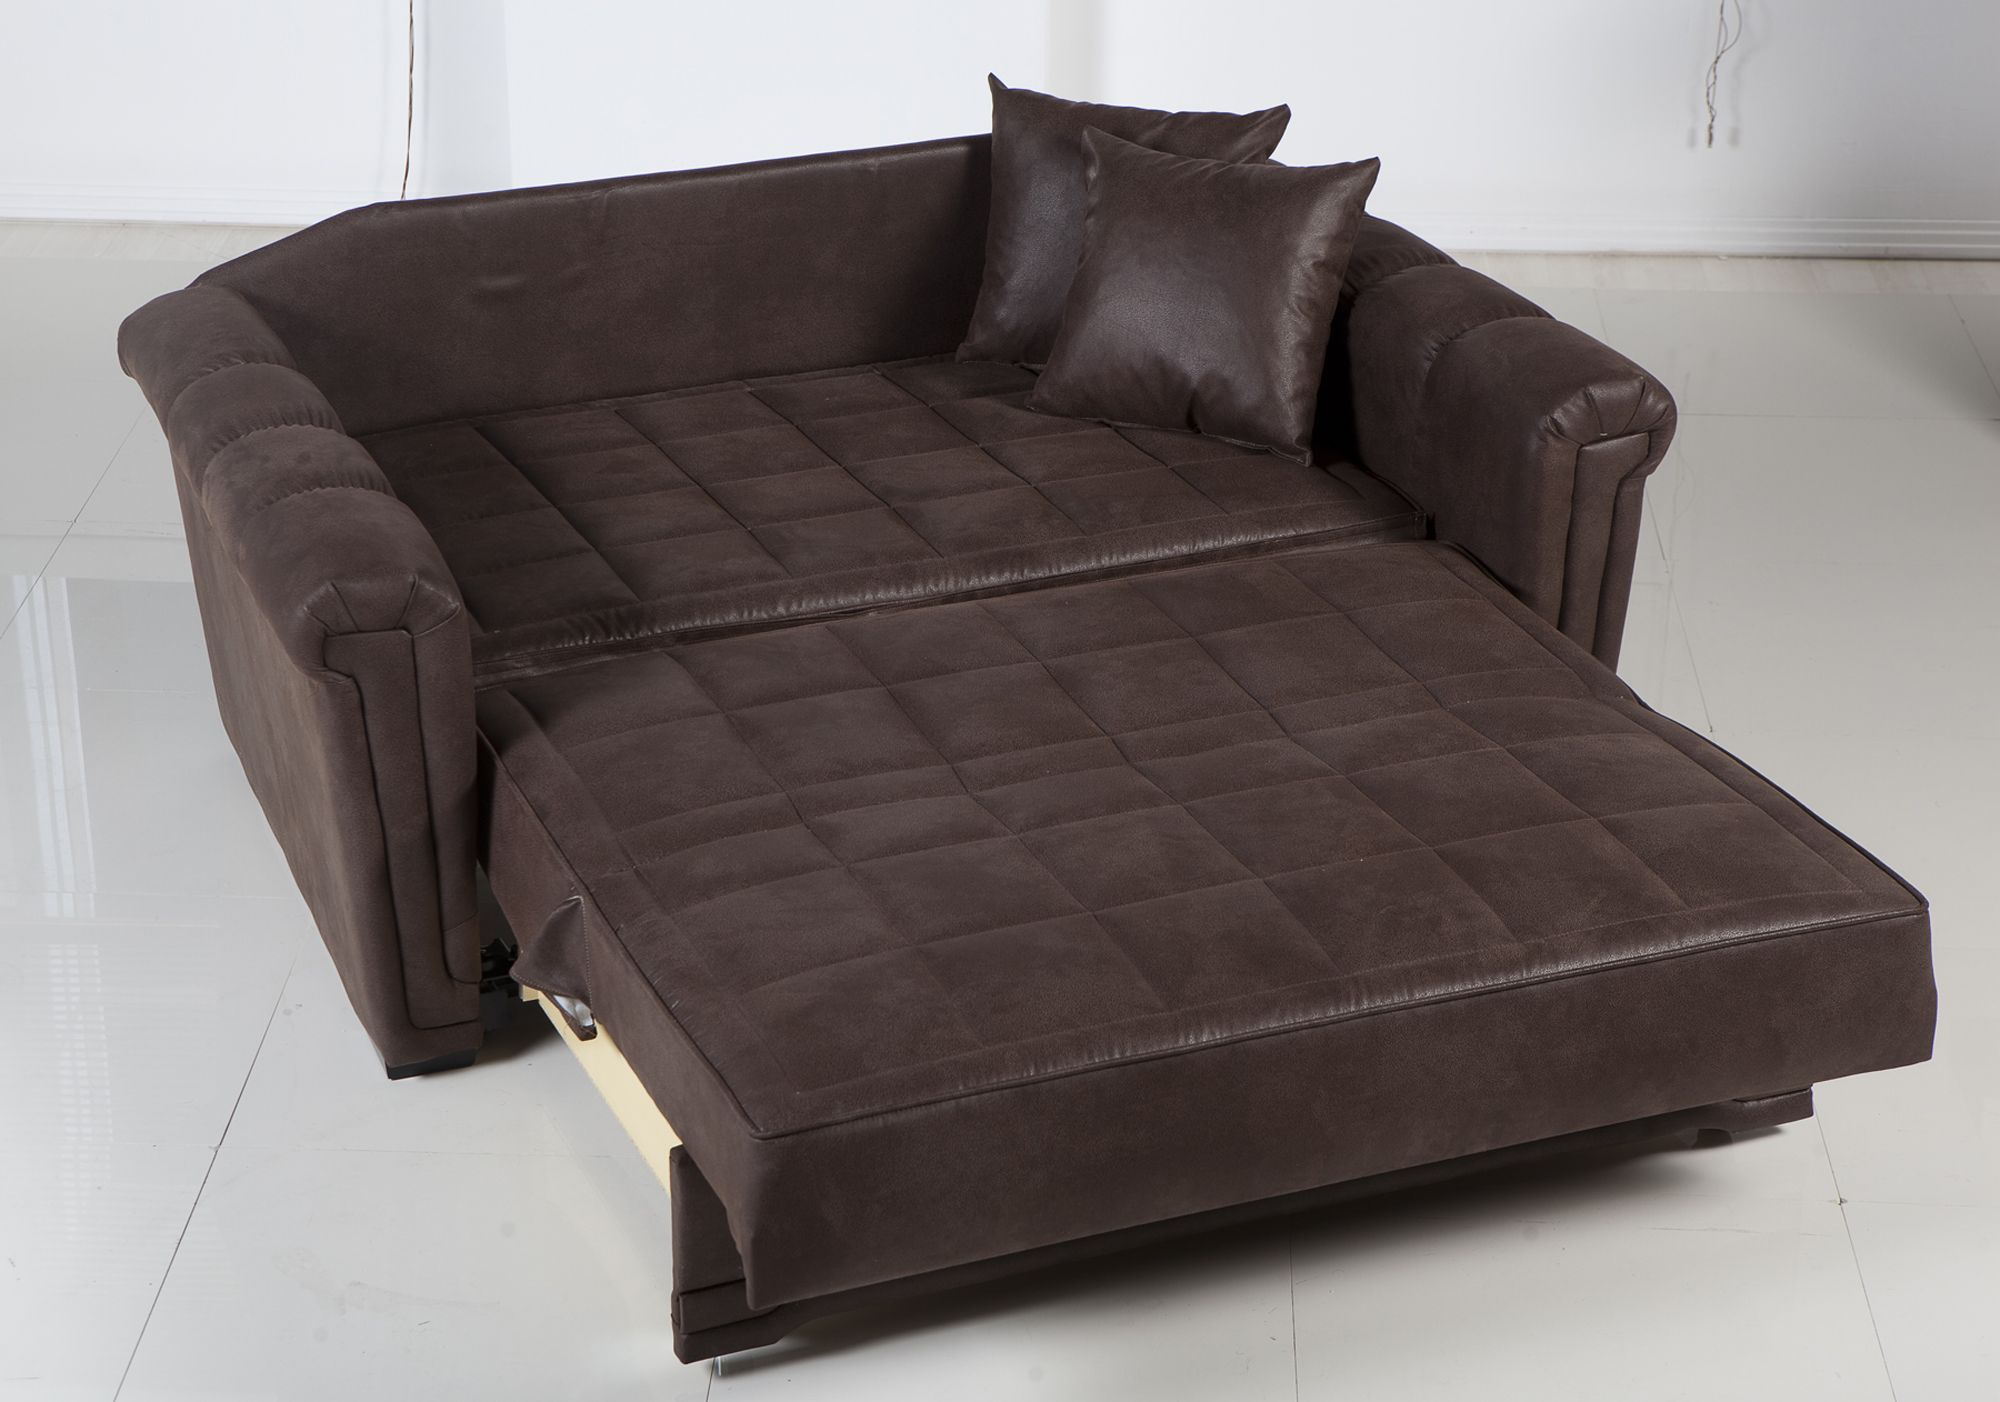 Cool Loveseat Sleeper Bed Good 85 Modern Sofa Ideas With